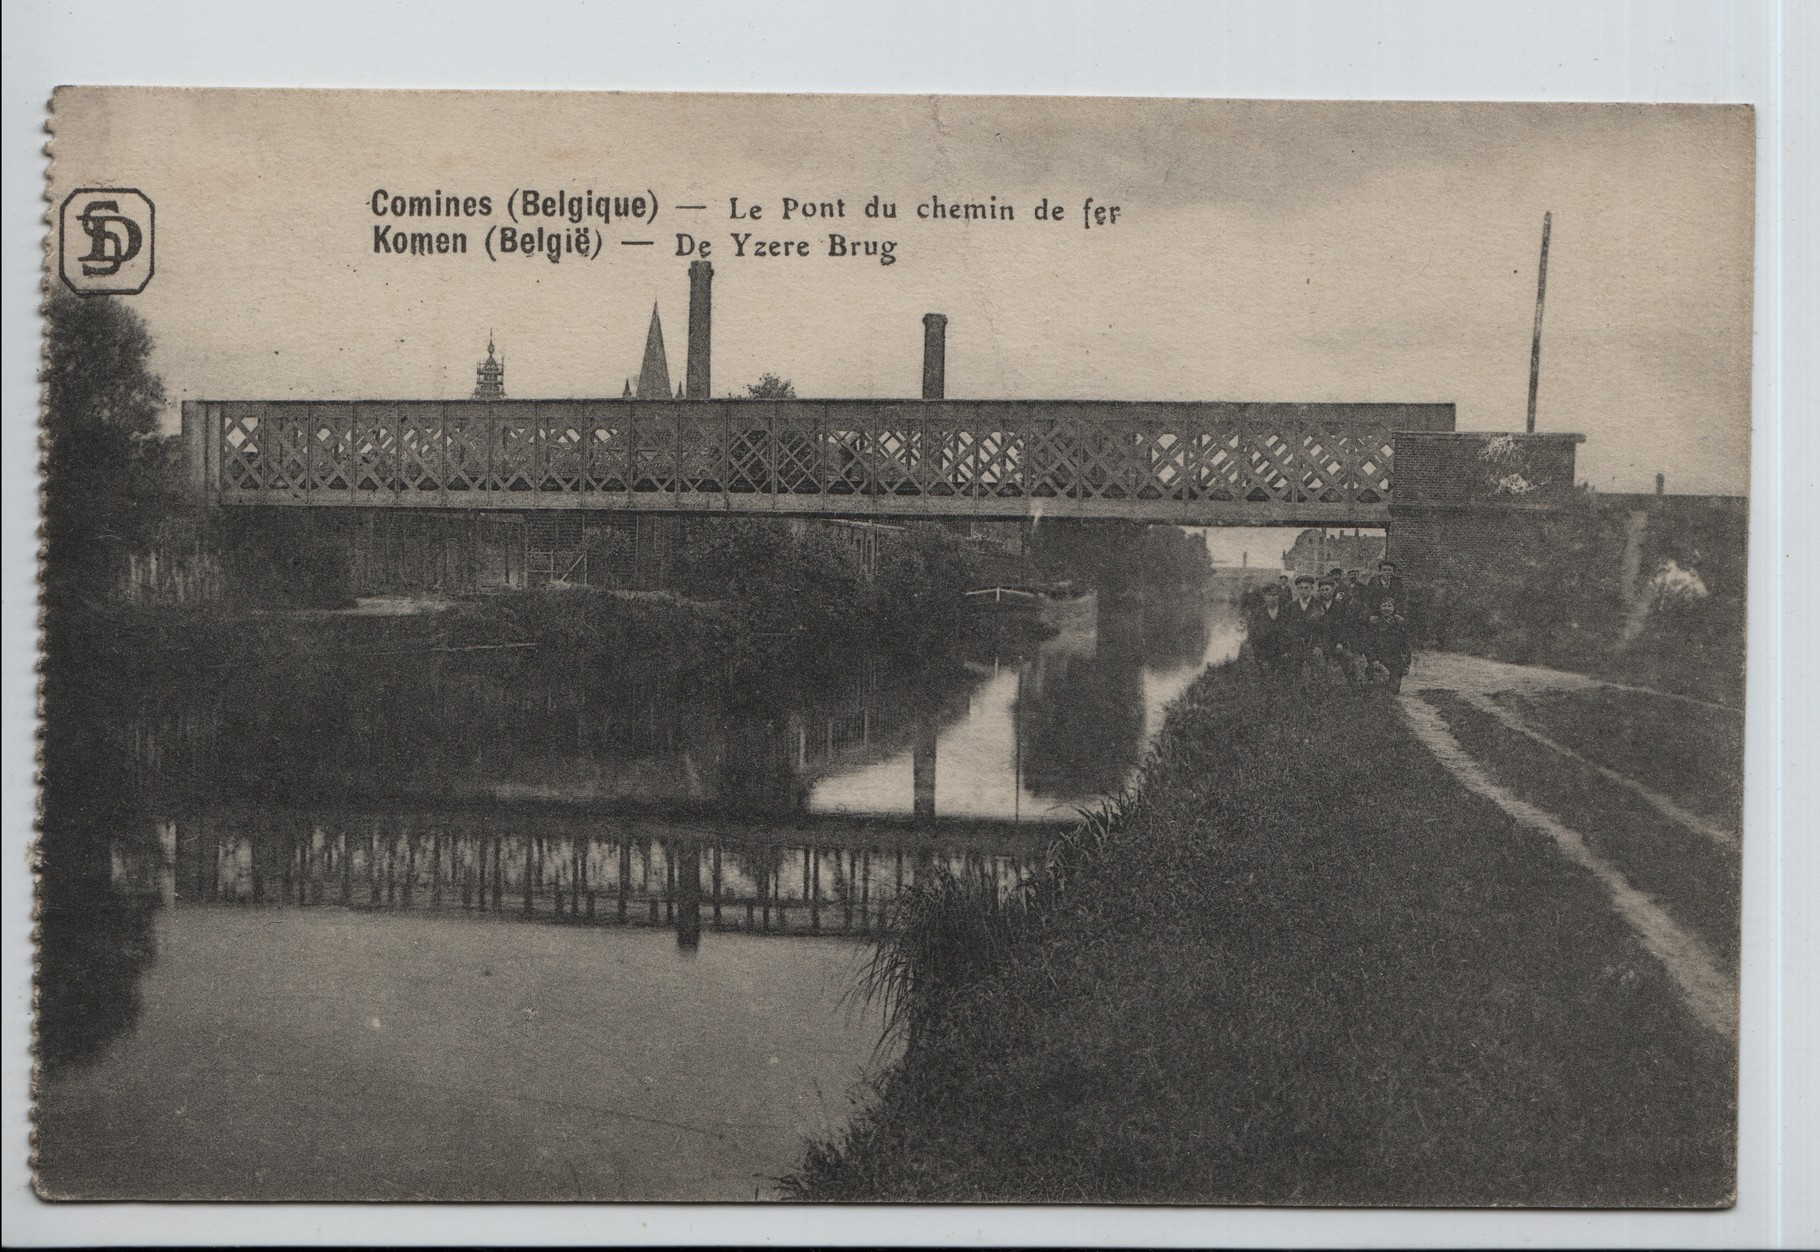 8. Railway bridge at Comines